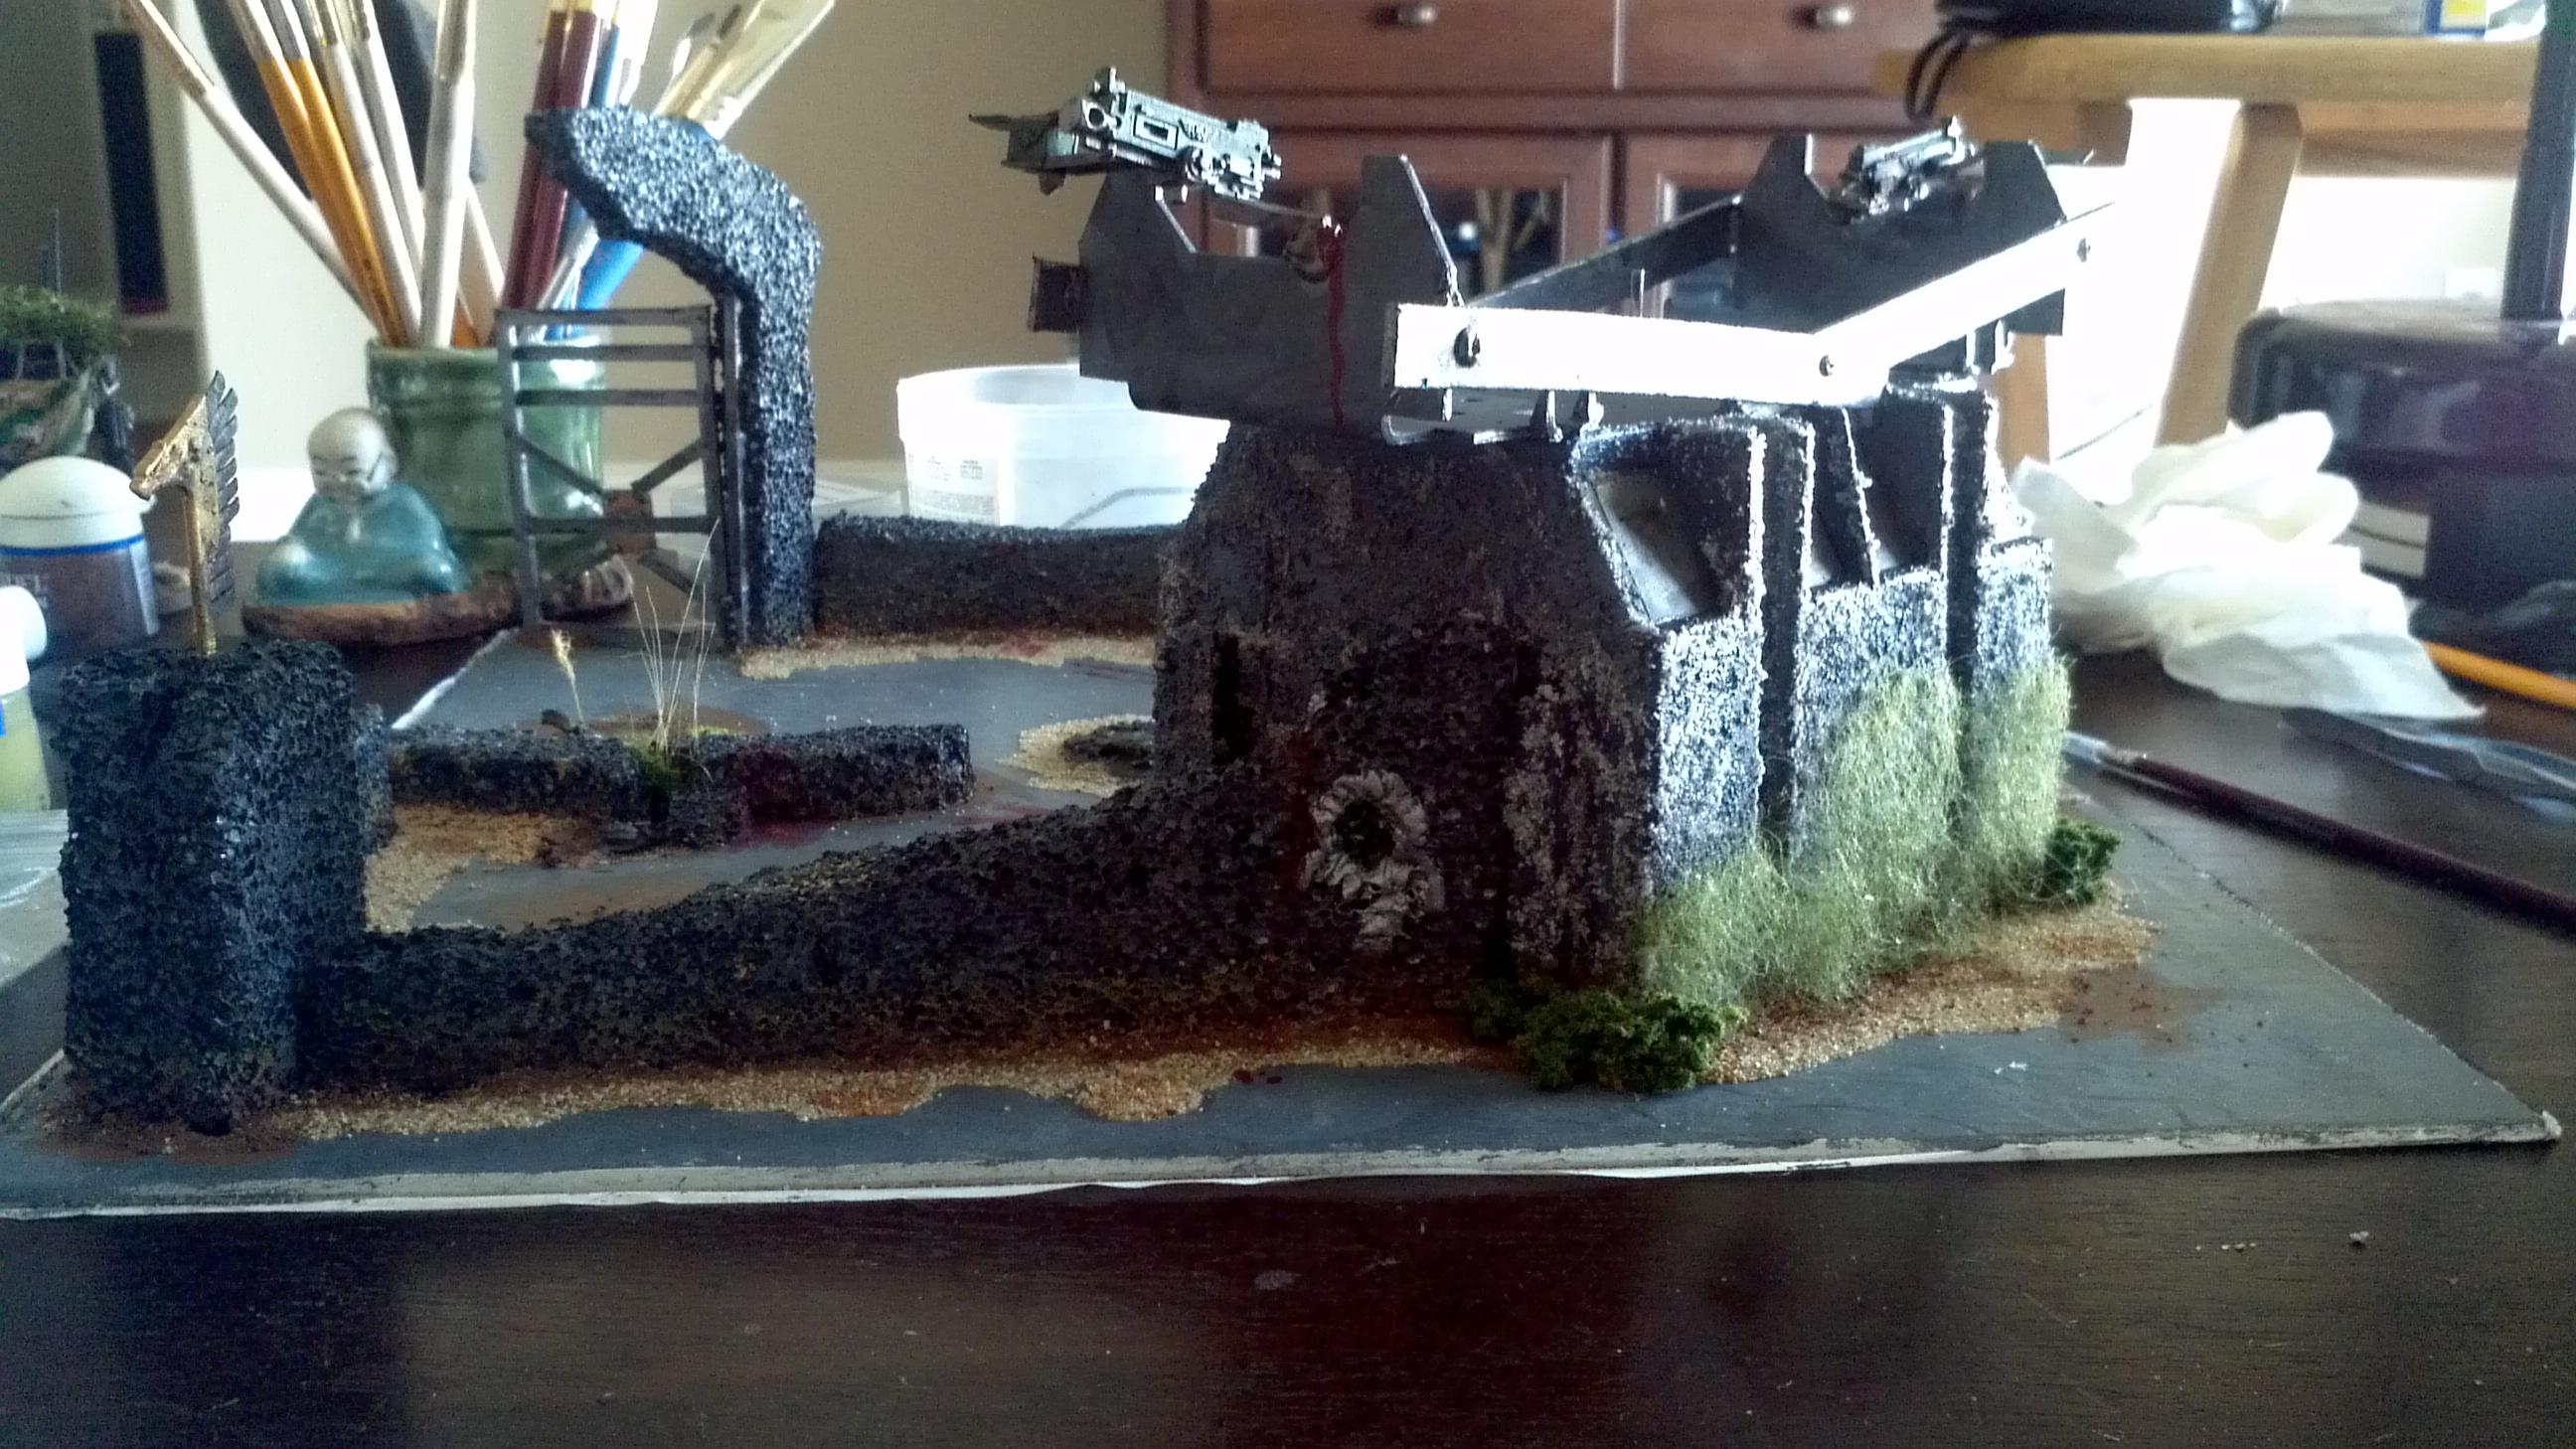 Blood, Buildings, Chaos, Cities Of Death, Cover, Dead, Death, Defense, Defensive, Delapadadted, Guardsmen, Heavy Weapon, Imperial, Imperial Guard, Over Run, Overrun, Placement, Ruin, Ruins, Terrain, Terrain Peice, Terrain Piece, Work In Progress, Zombie, Zombie Attack